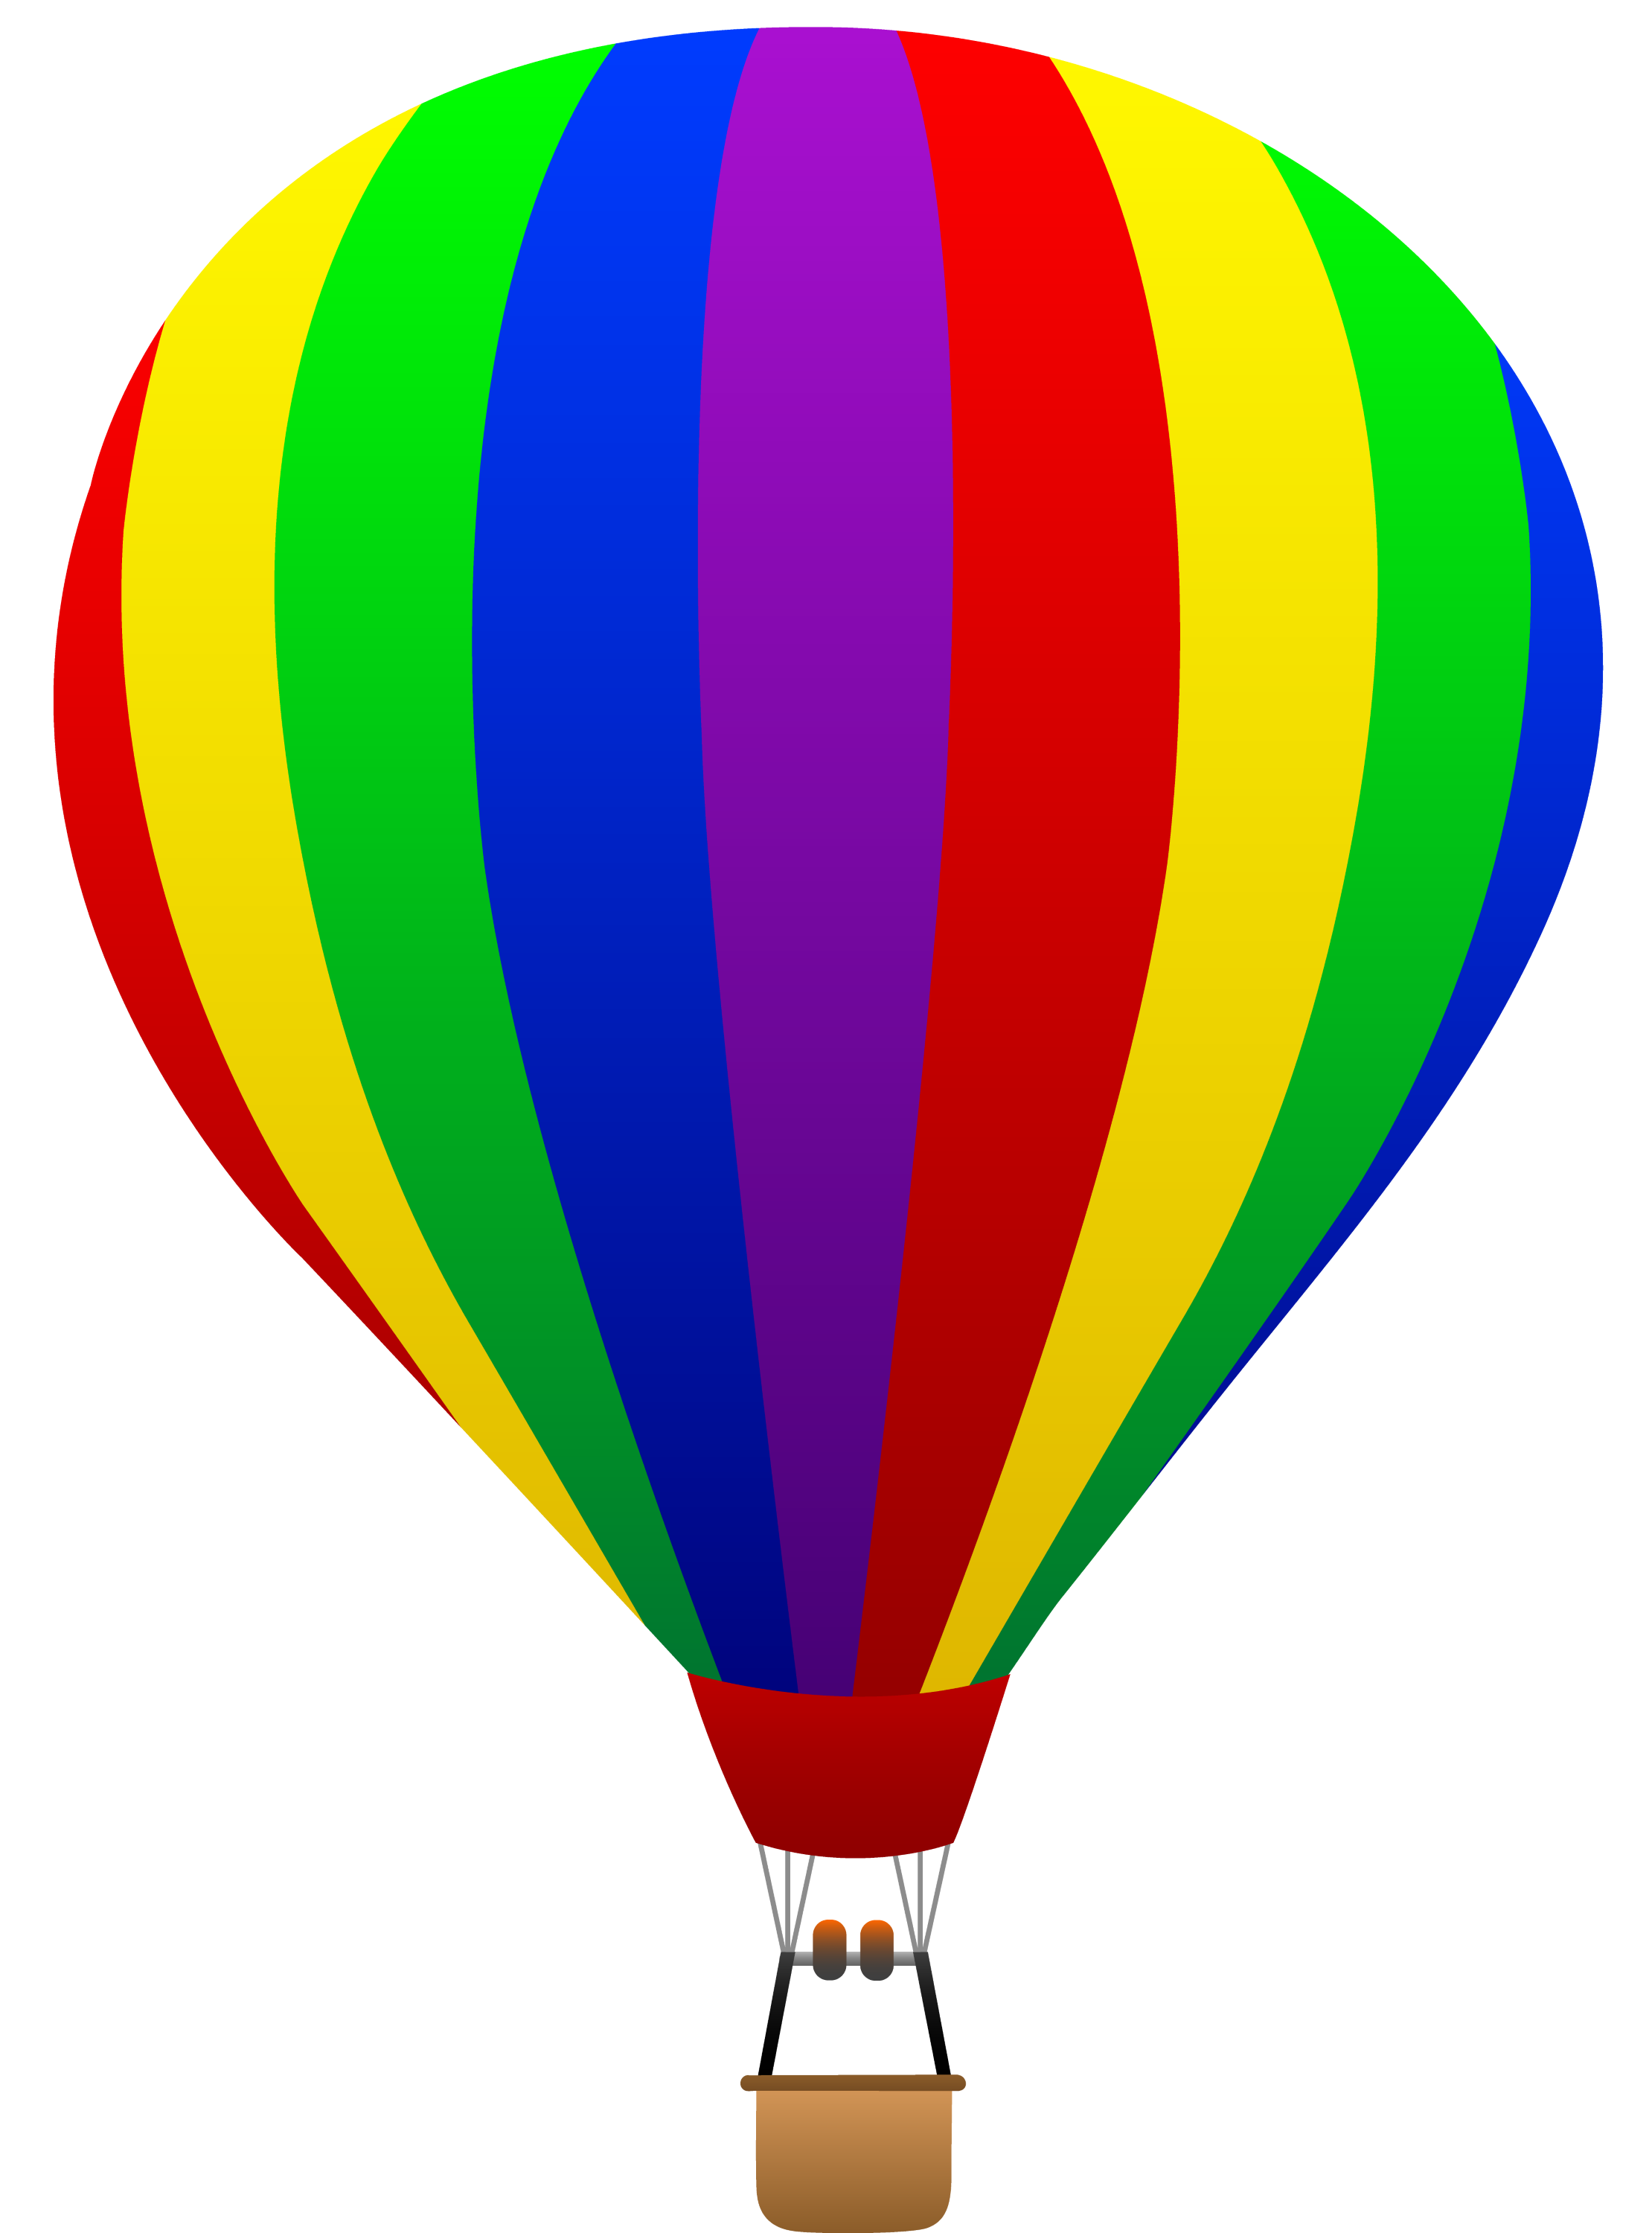 Colorful Hot Air Balloon Clipart hot air balloons — crafthubs